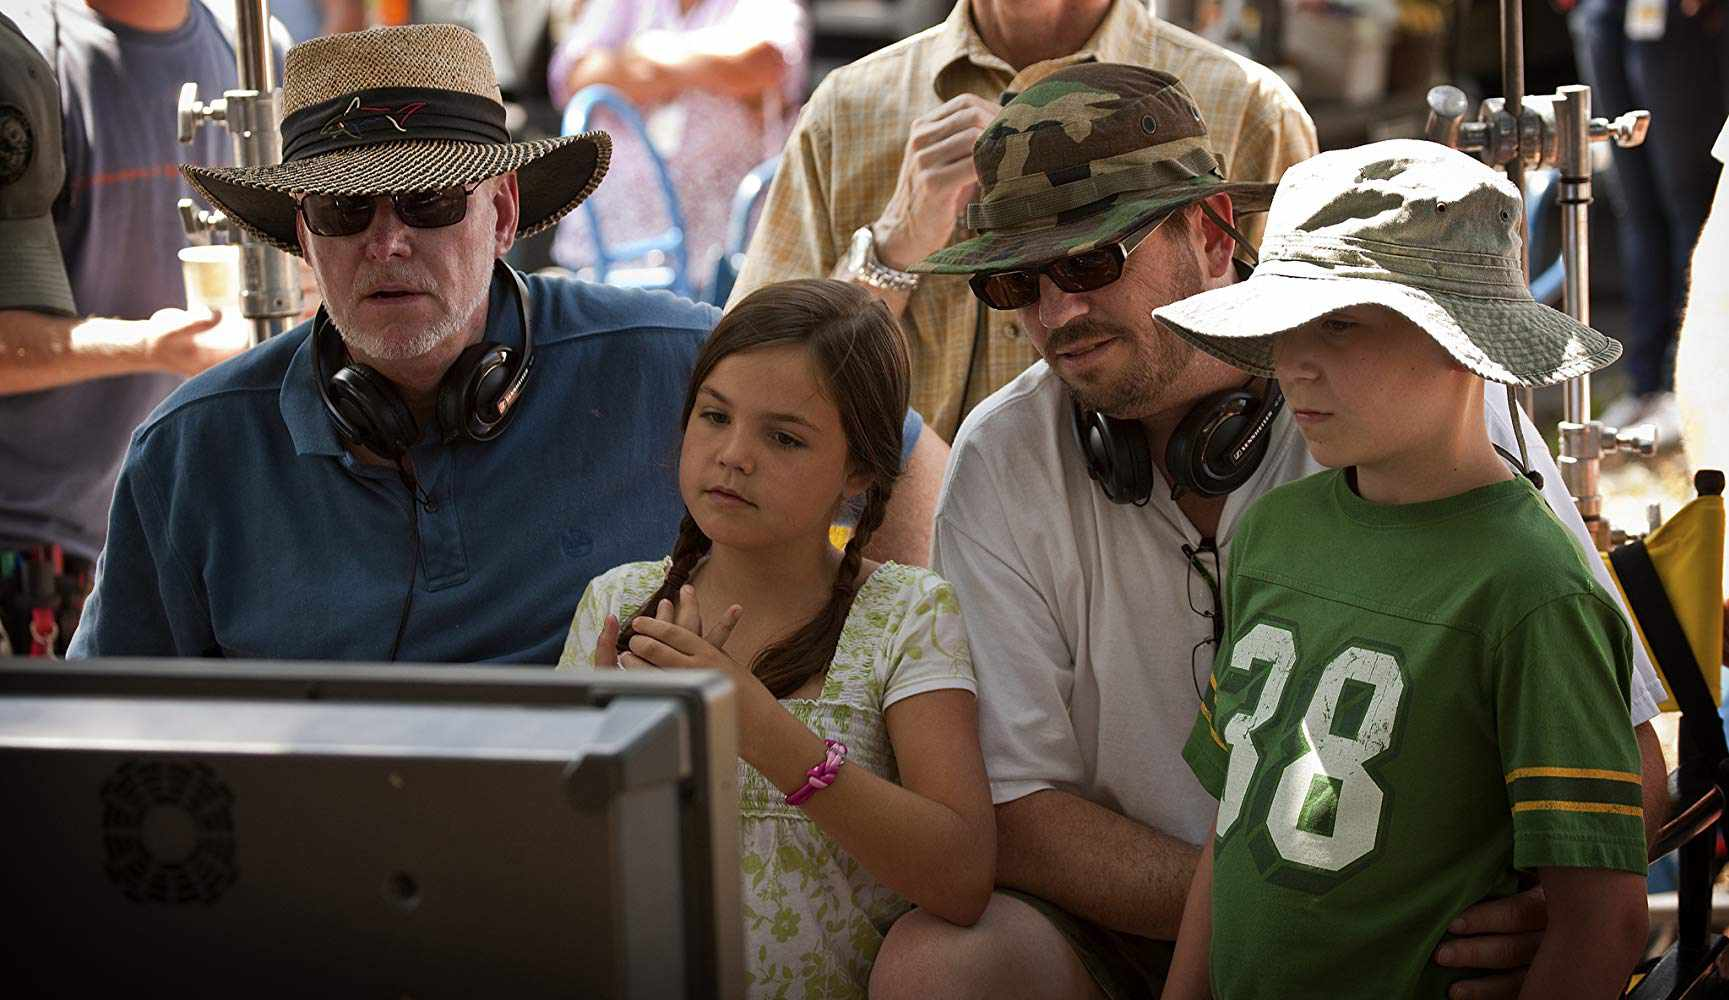 David Nixon, Tanner Maguire, Bailee Madison, and Patrick Doughtie in Letters to God